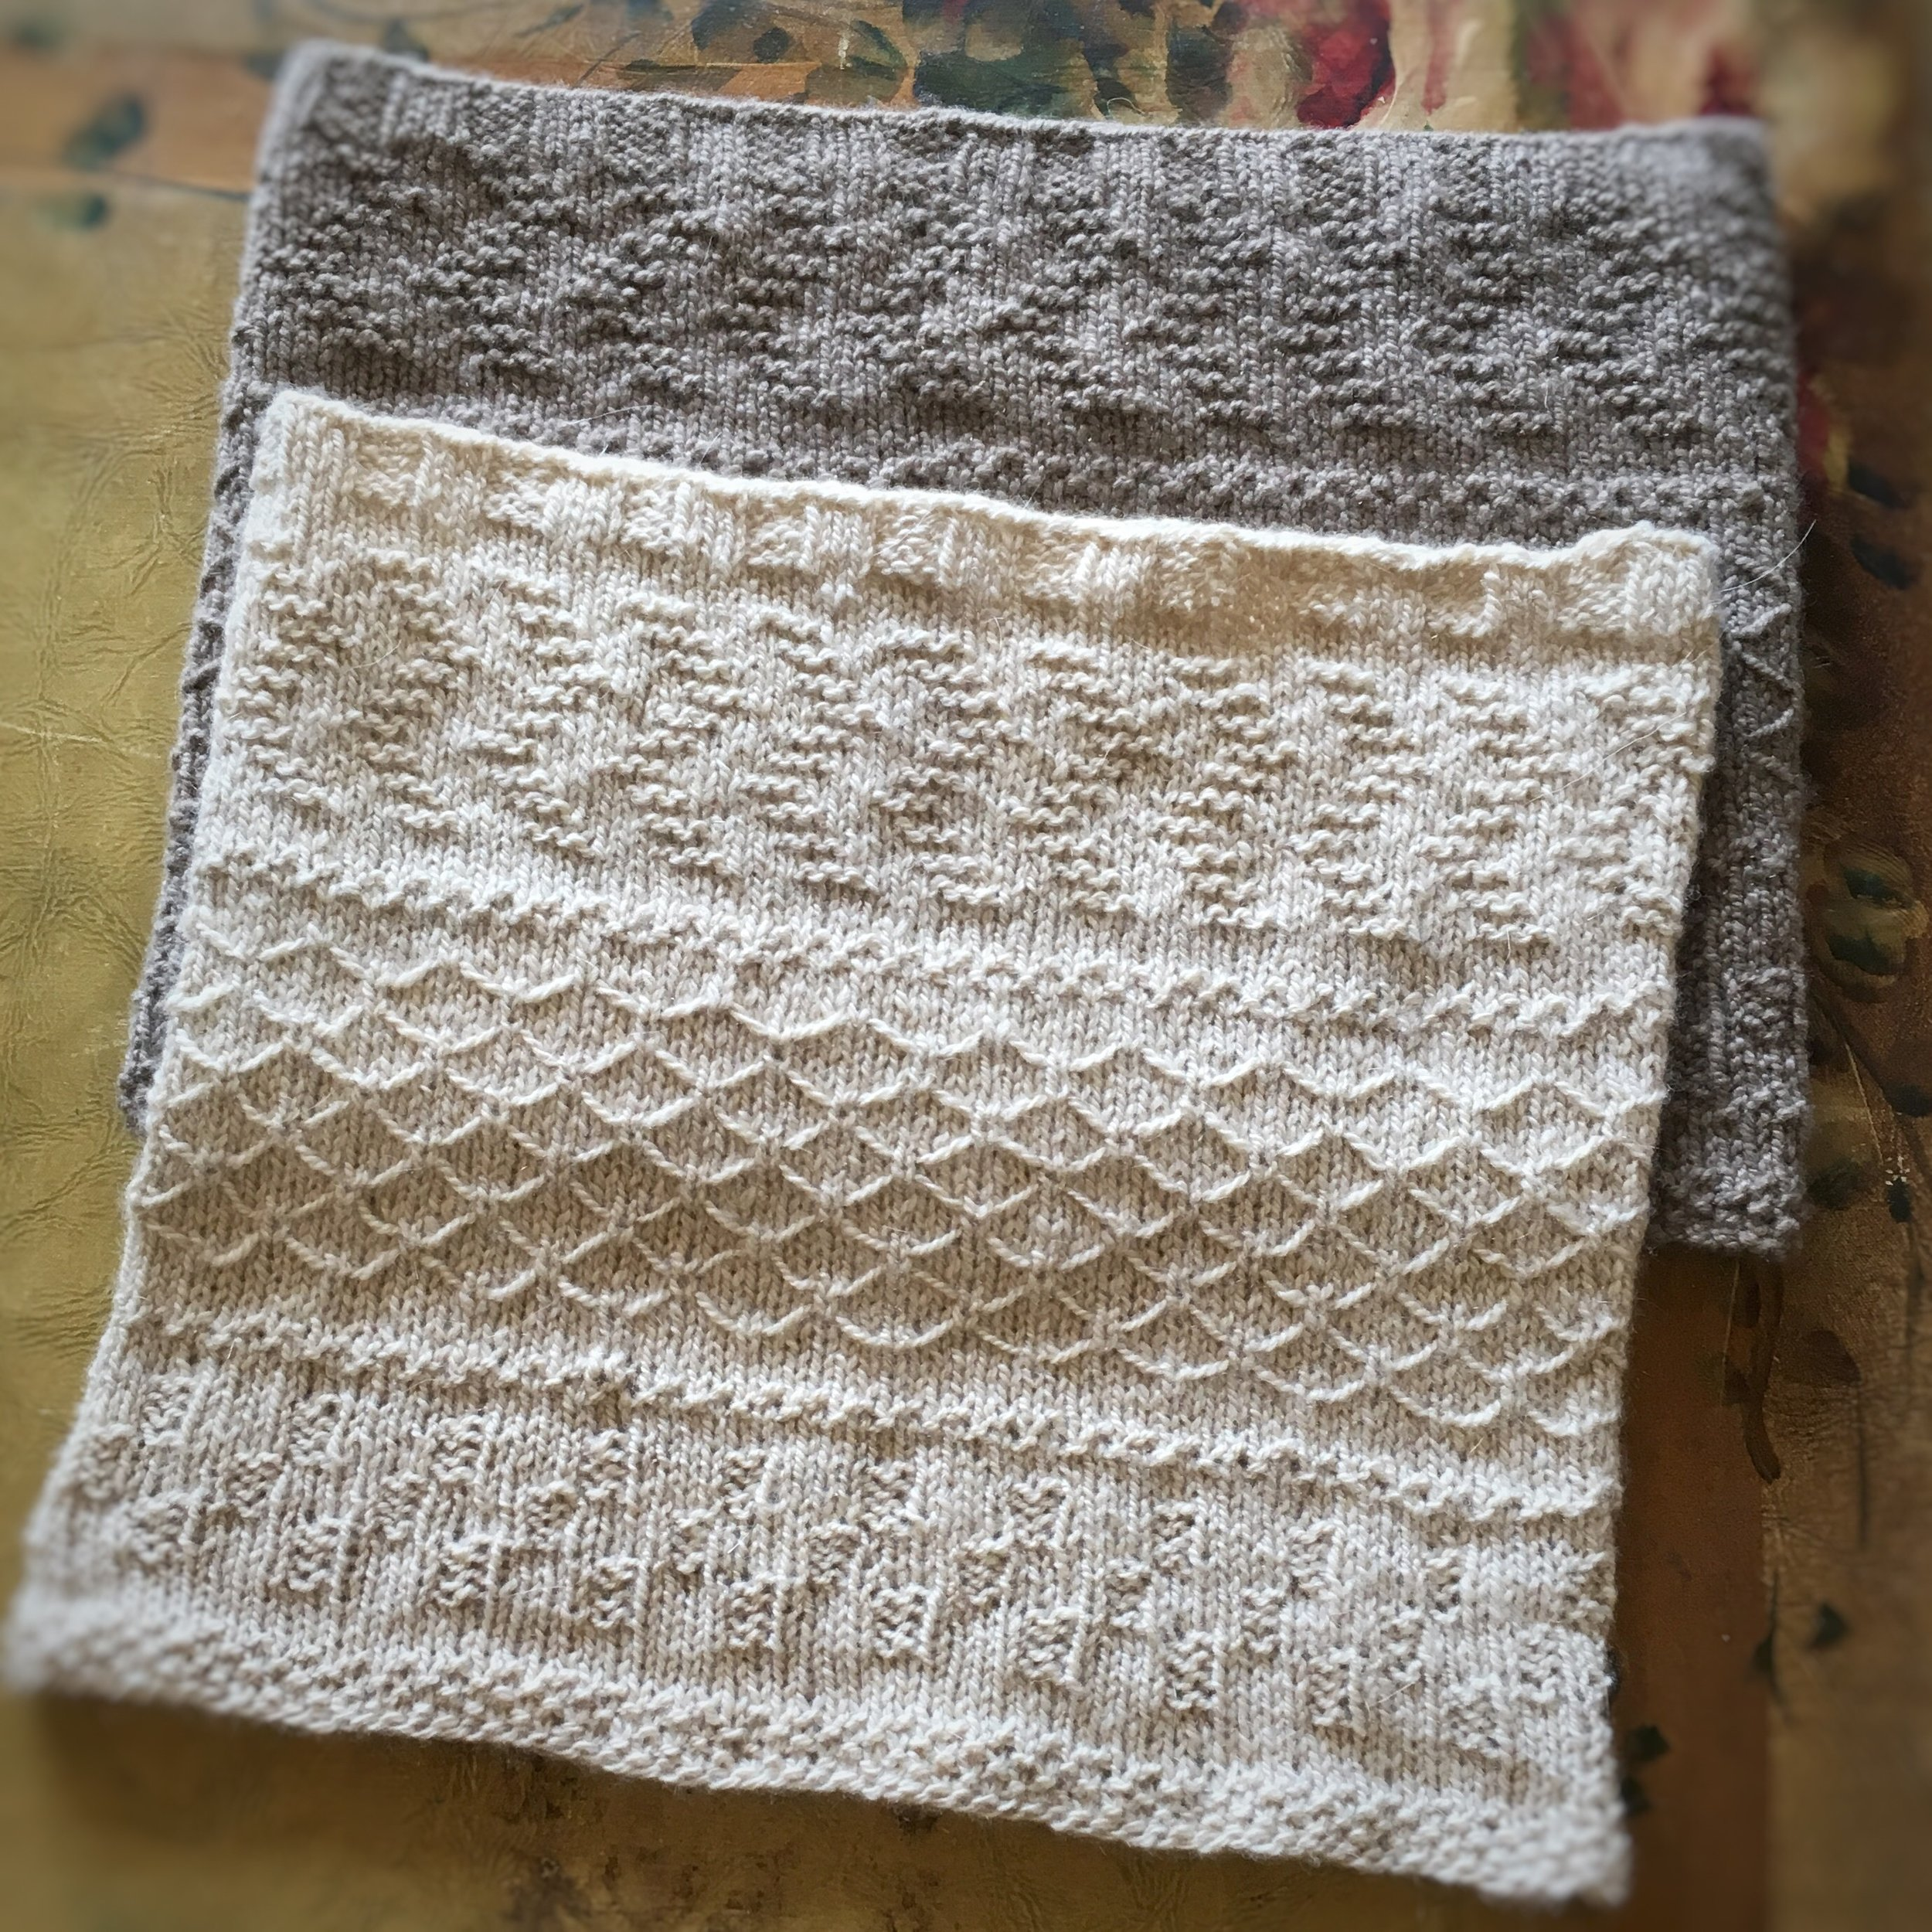 Familiar - Texture sampler knit in cashmere